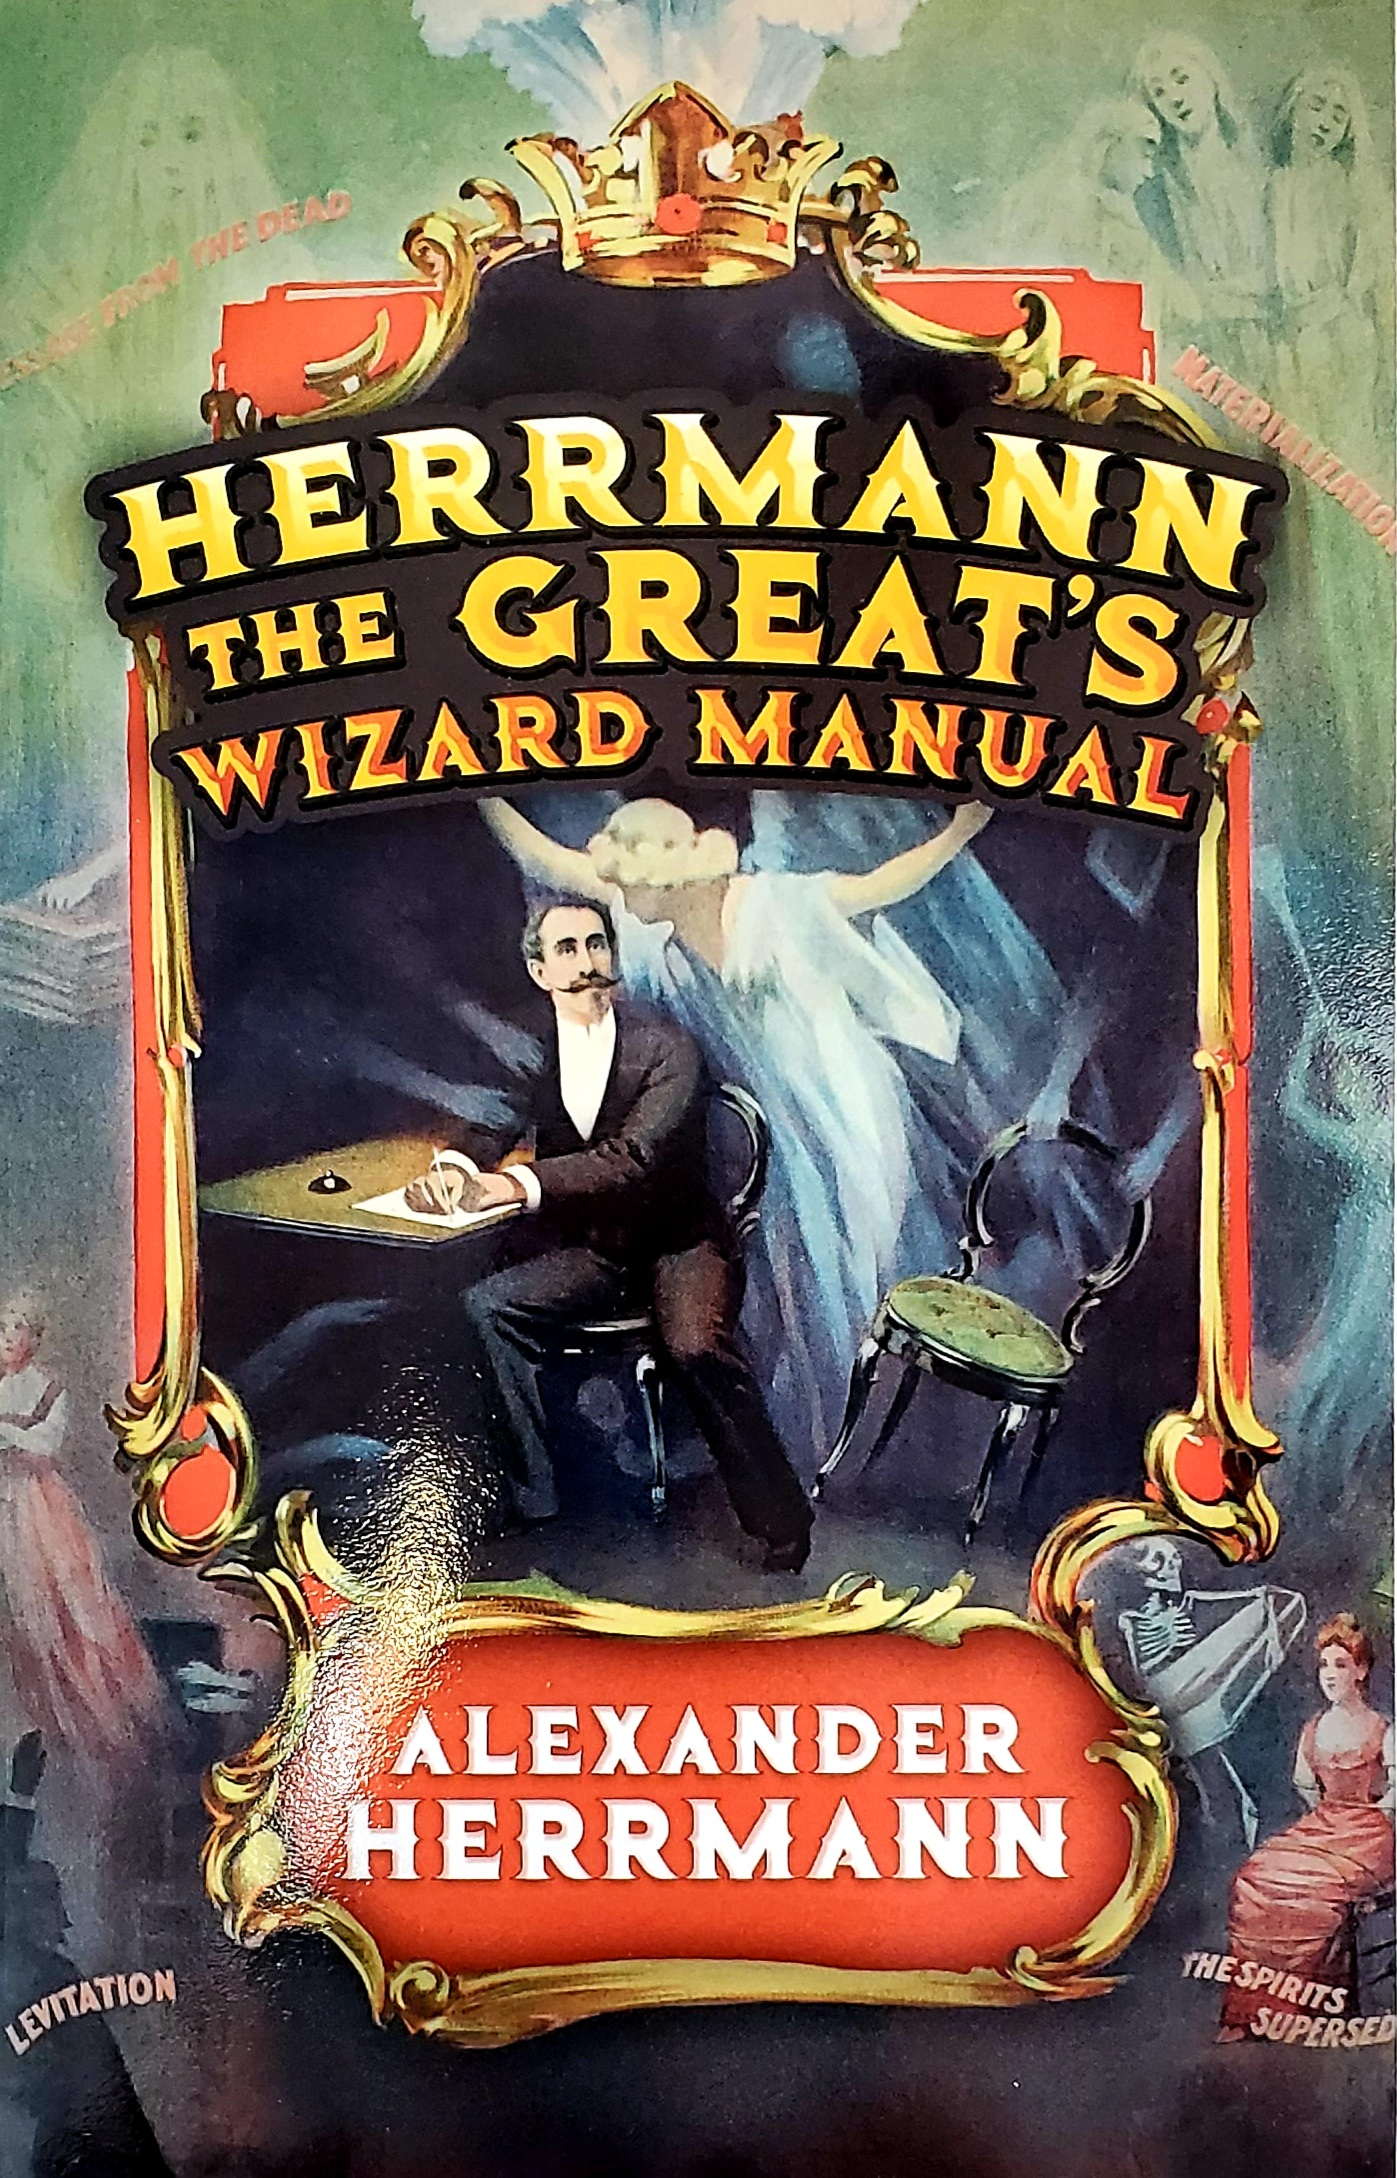 Herrmann the Great's Wizard Manual